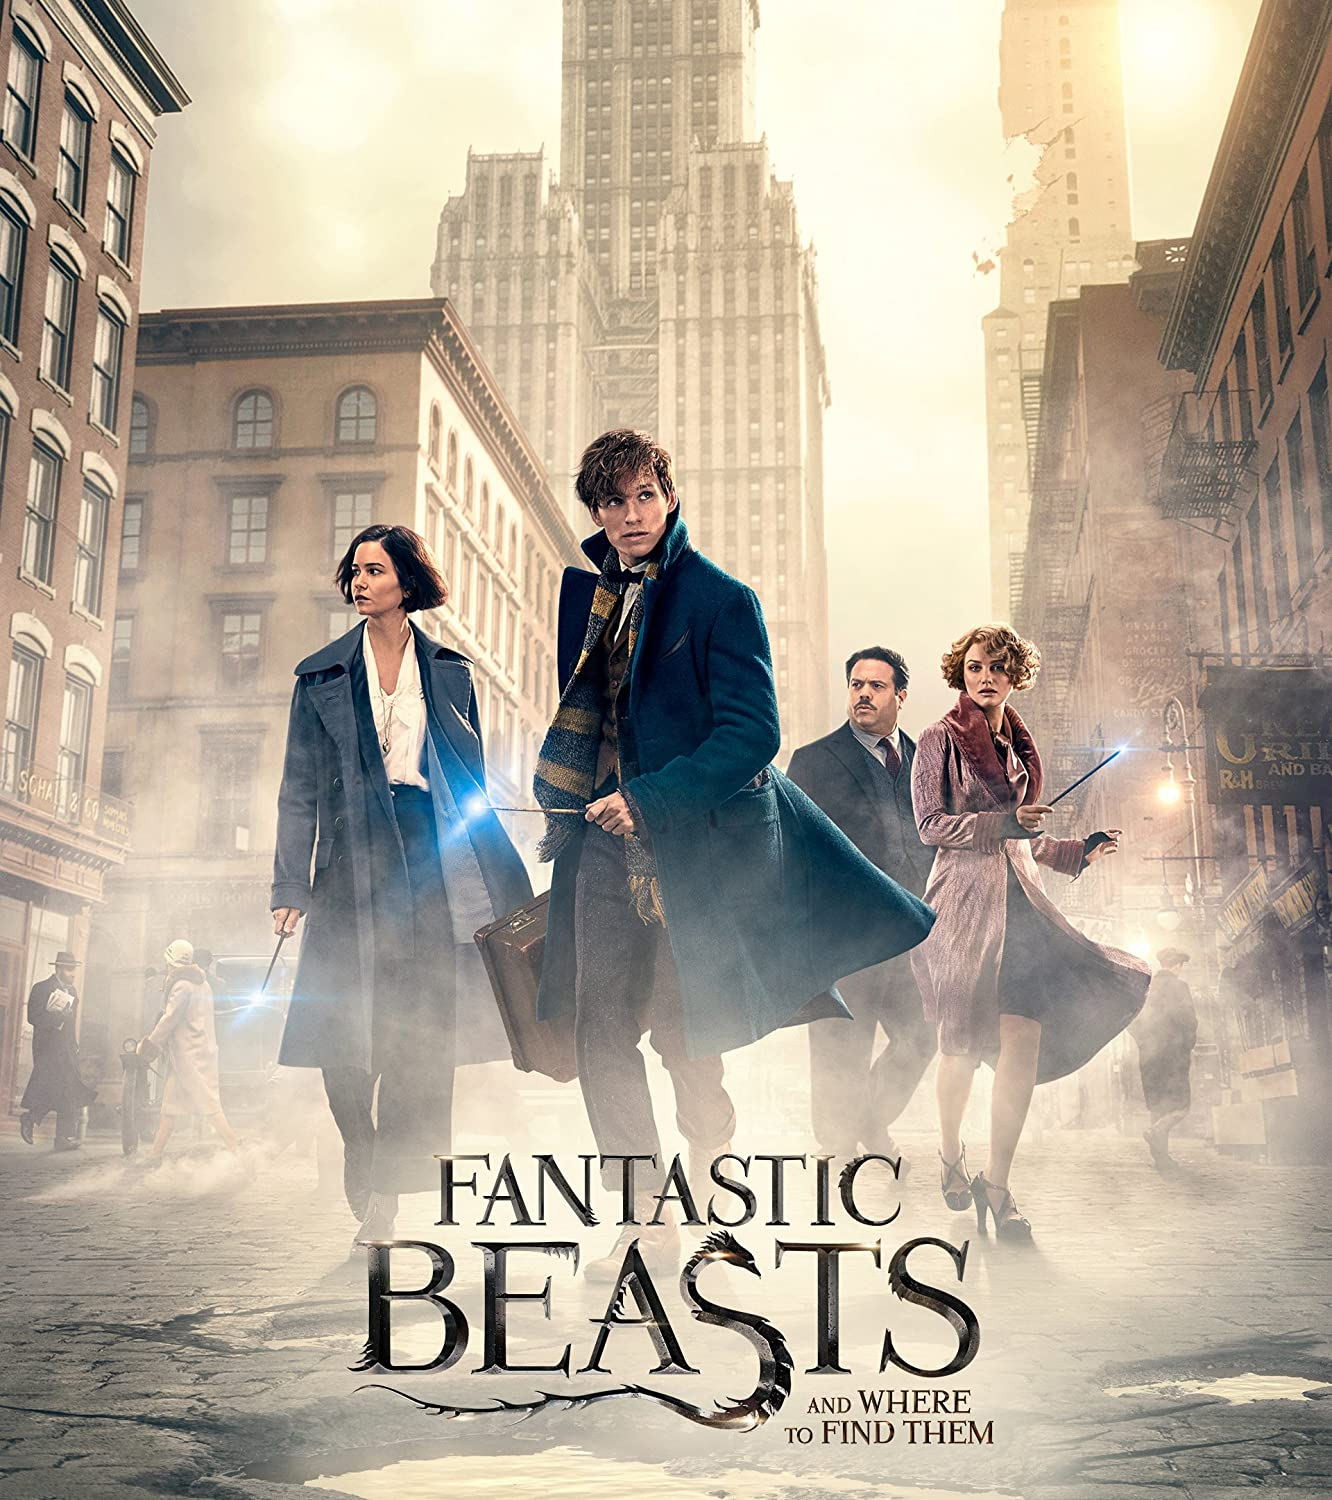 Uhd Animales Fantásticos Y Dónde Encontrarlos Fantastic Beasts And Where To Find Them 2016 David Yates Y Secuelas